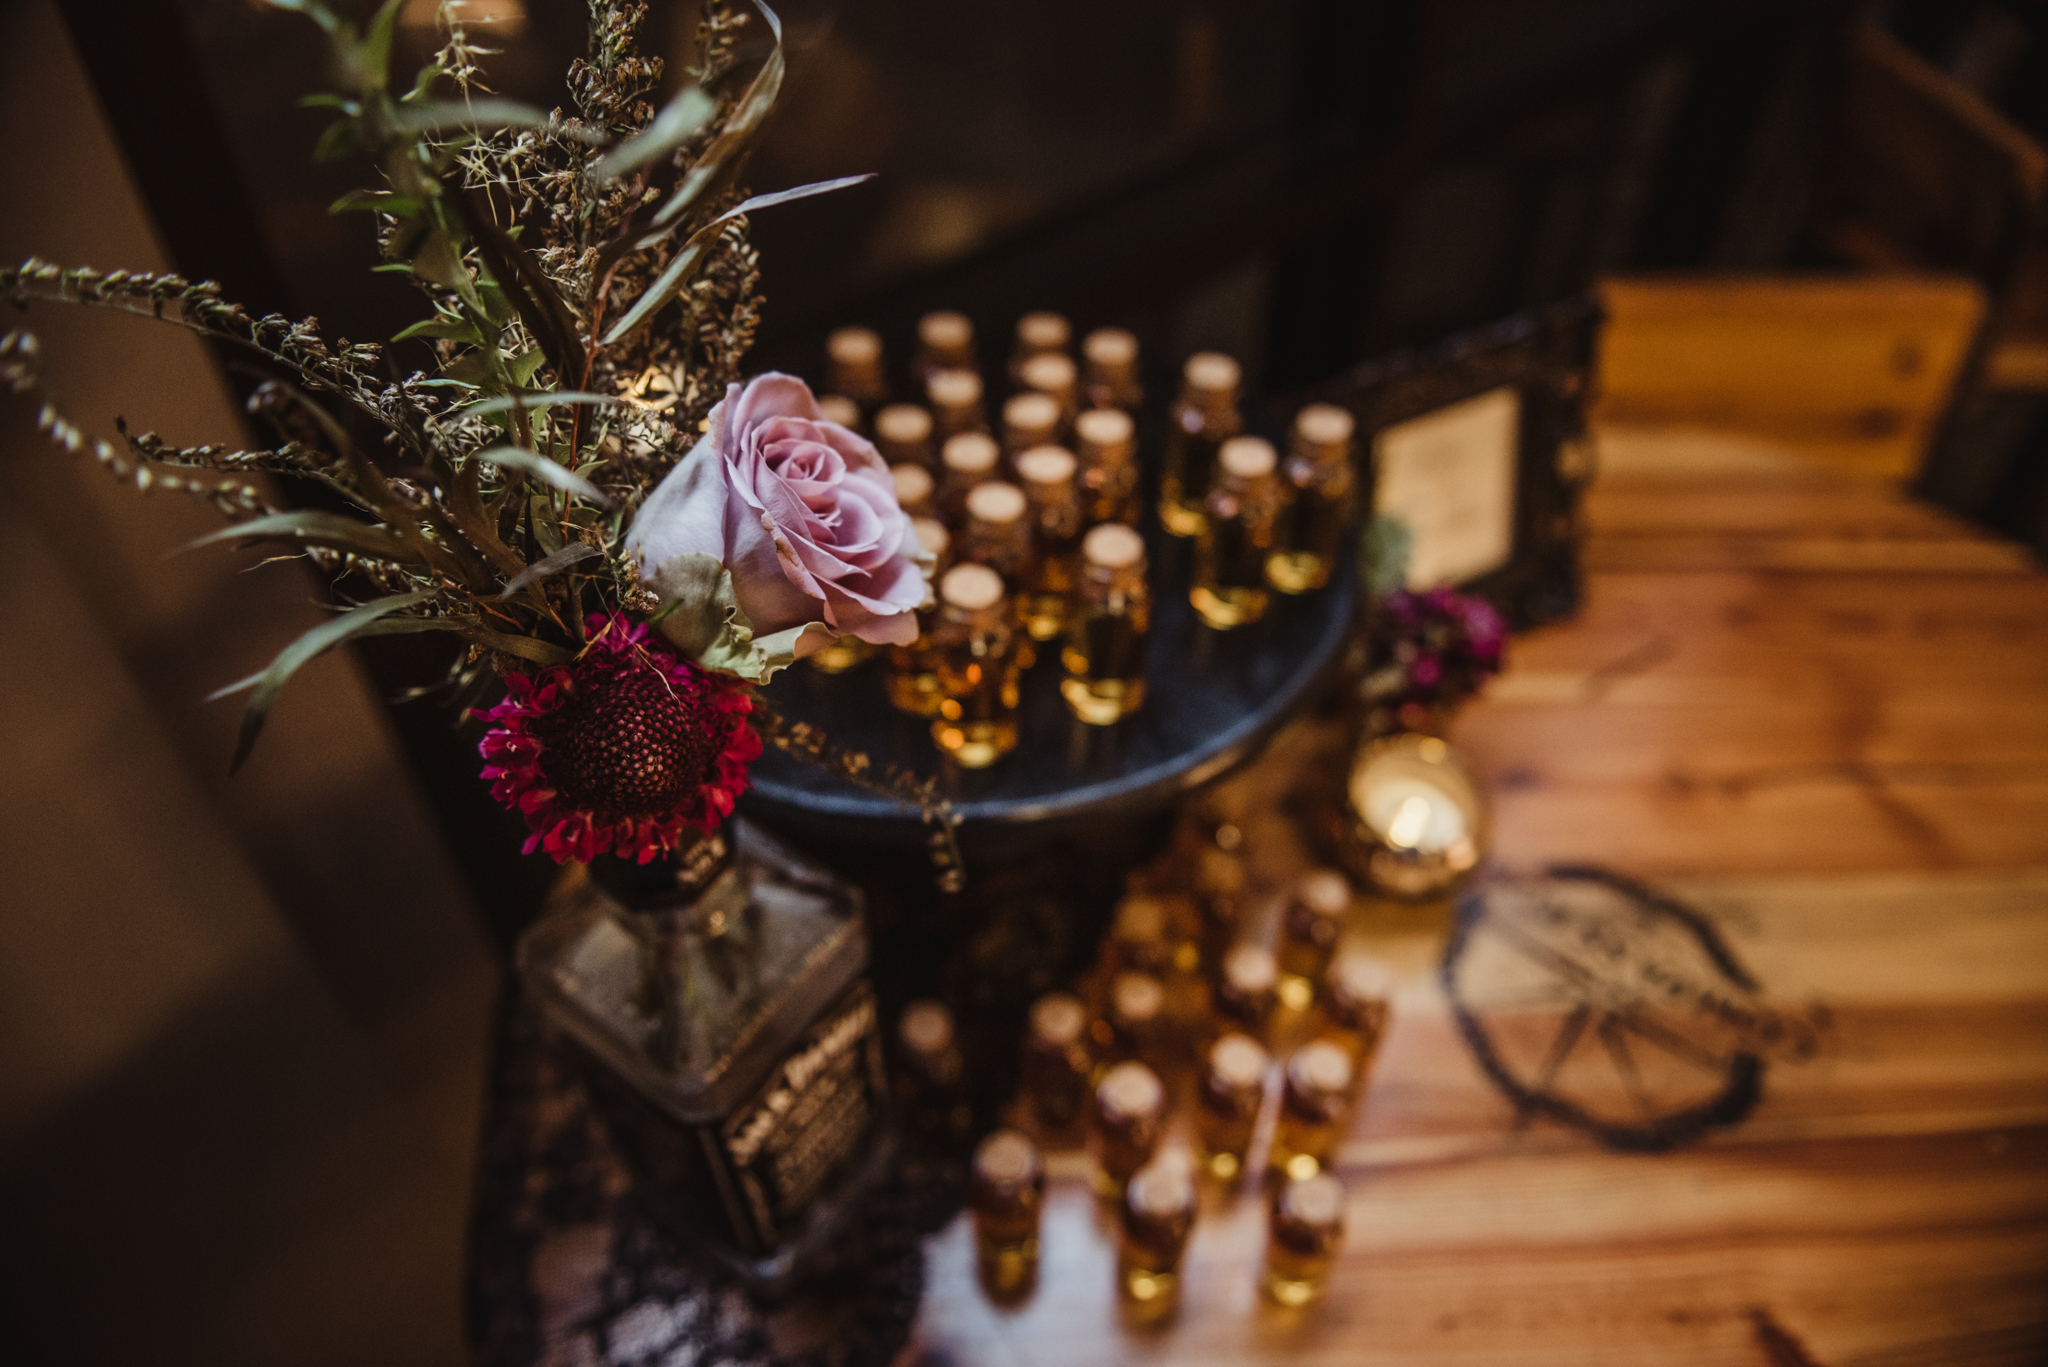 shots-of-jack-daniels-for-the-wedding-guests-to-take-home.jpg